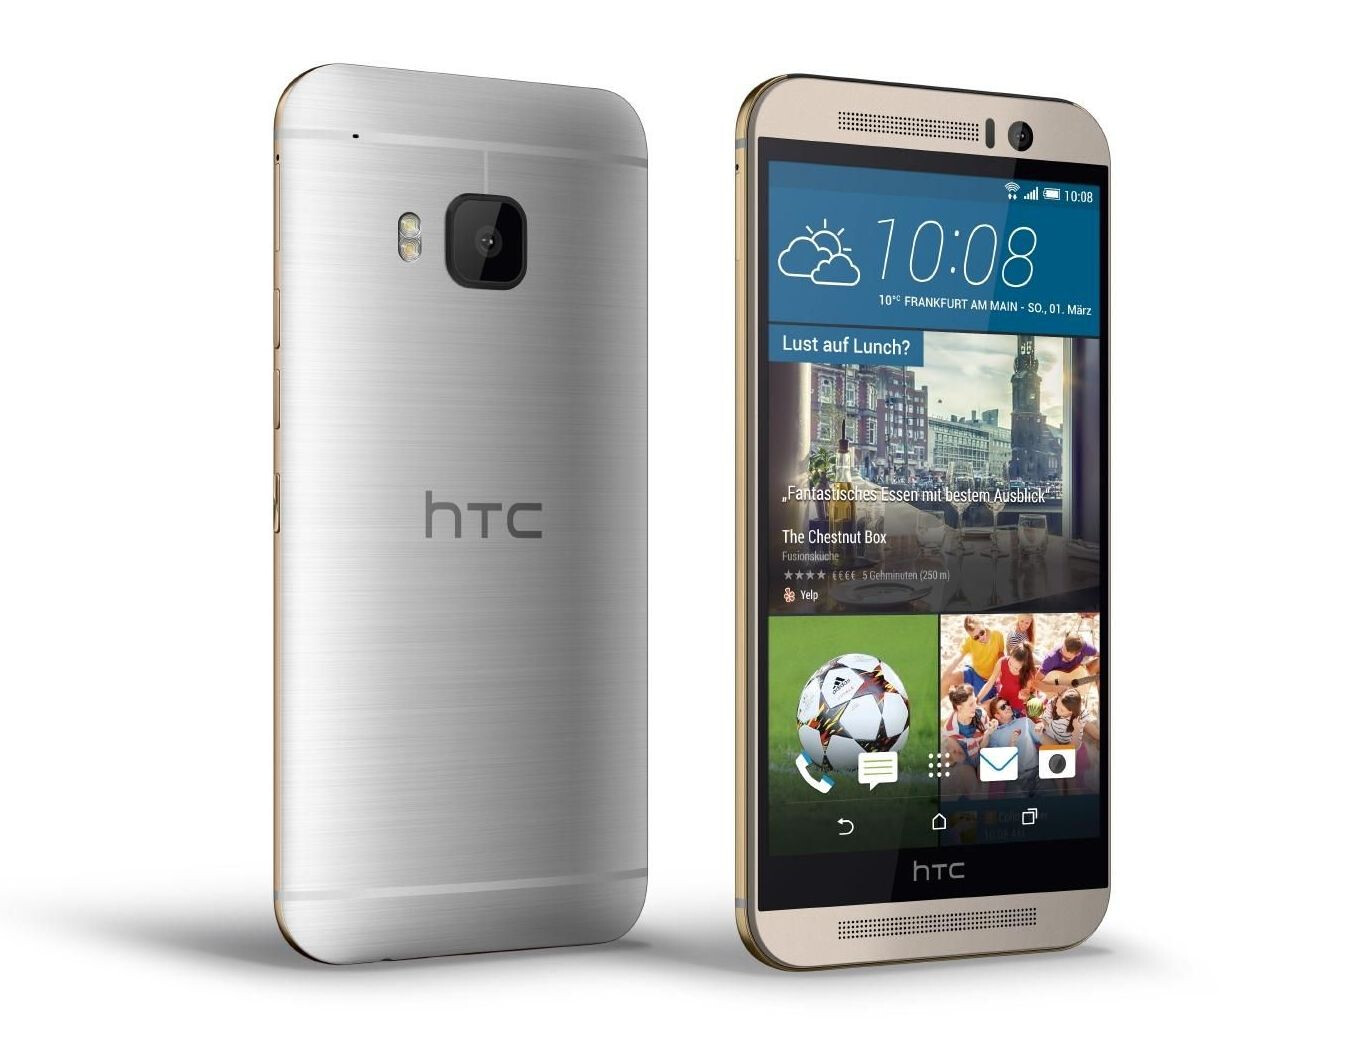 This suspected HTC One M9 Plus wallpaper suggests a Quad ...